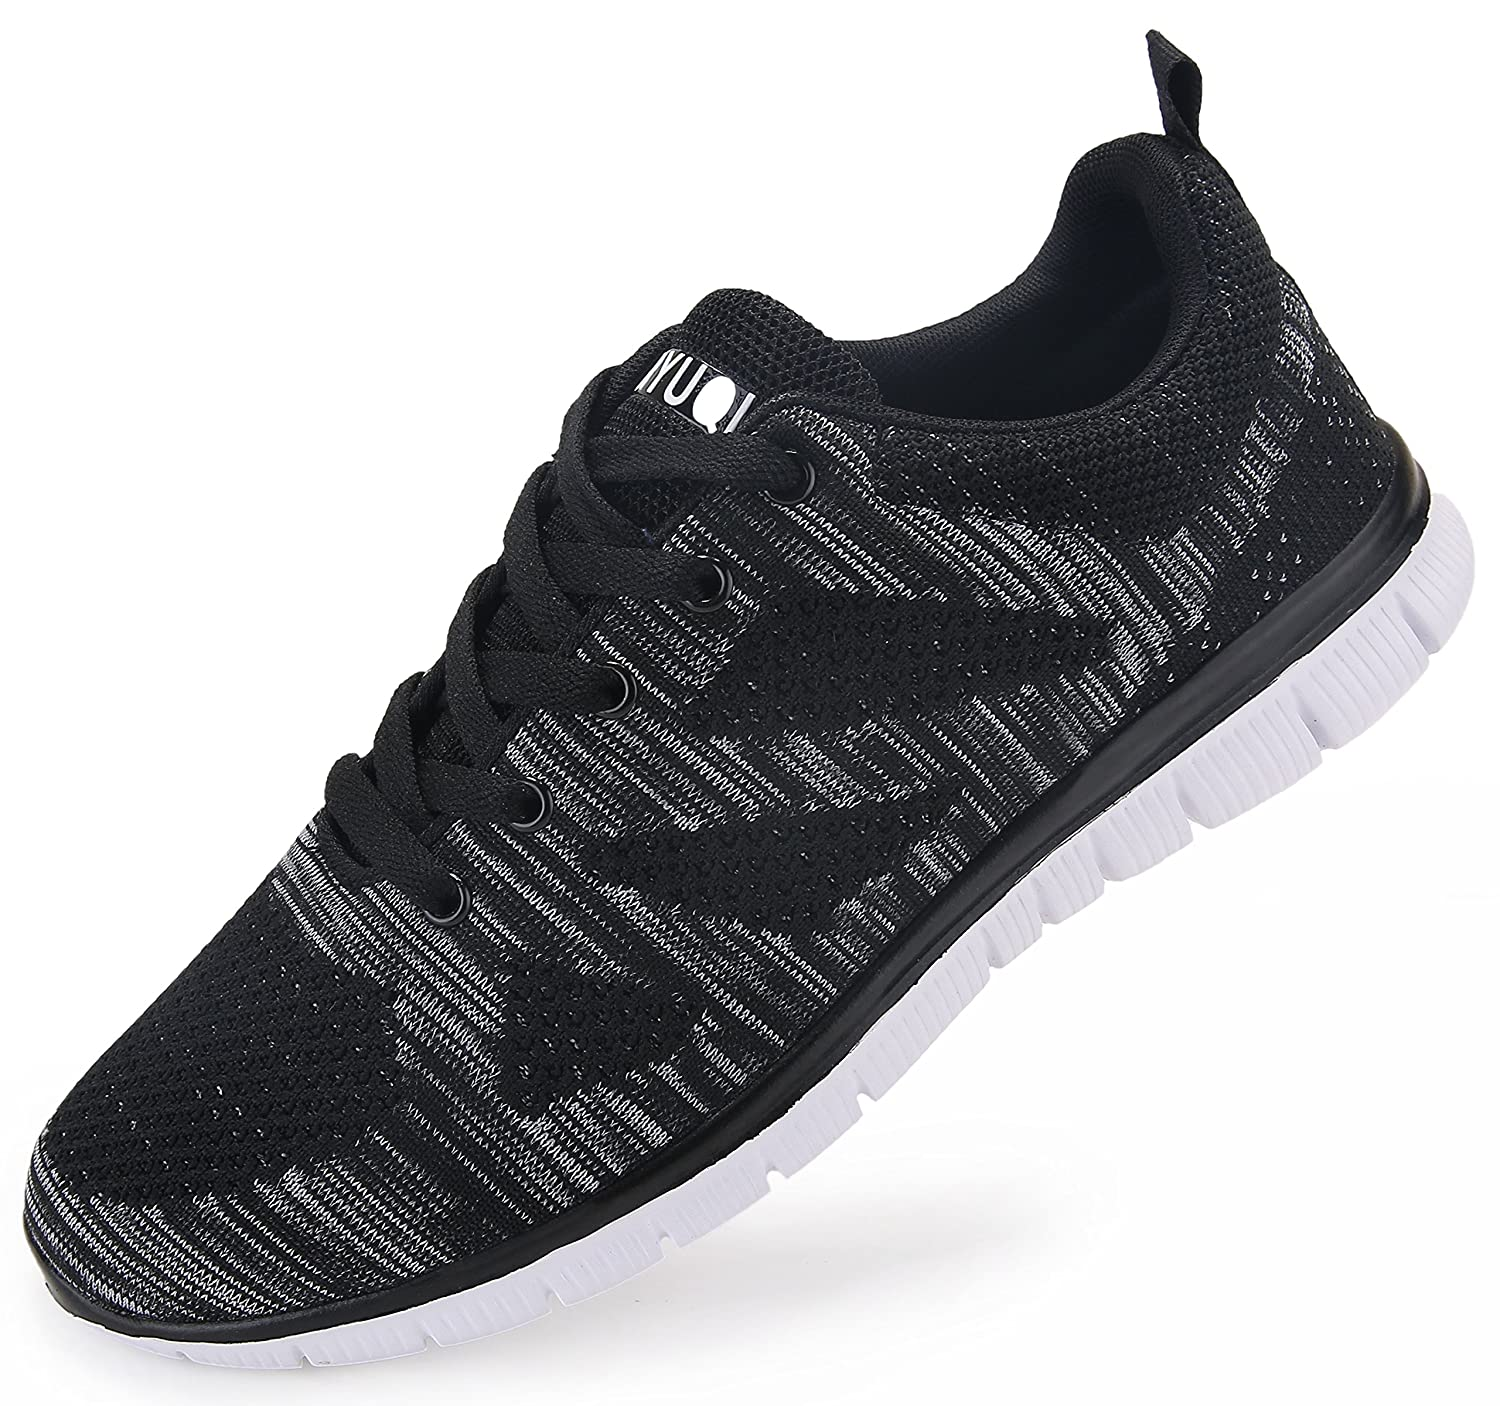 newest a62c5 6c136 Vibdiv Men s Trainers Casual Lightweight Breathability Comfortable Lace-Up  Leisure Gym Shoes  Amazon.co.uk  Shoes   Bags